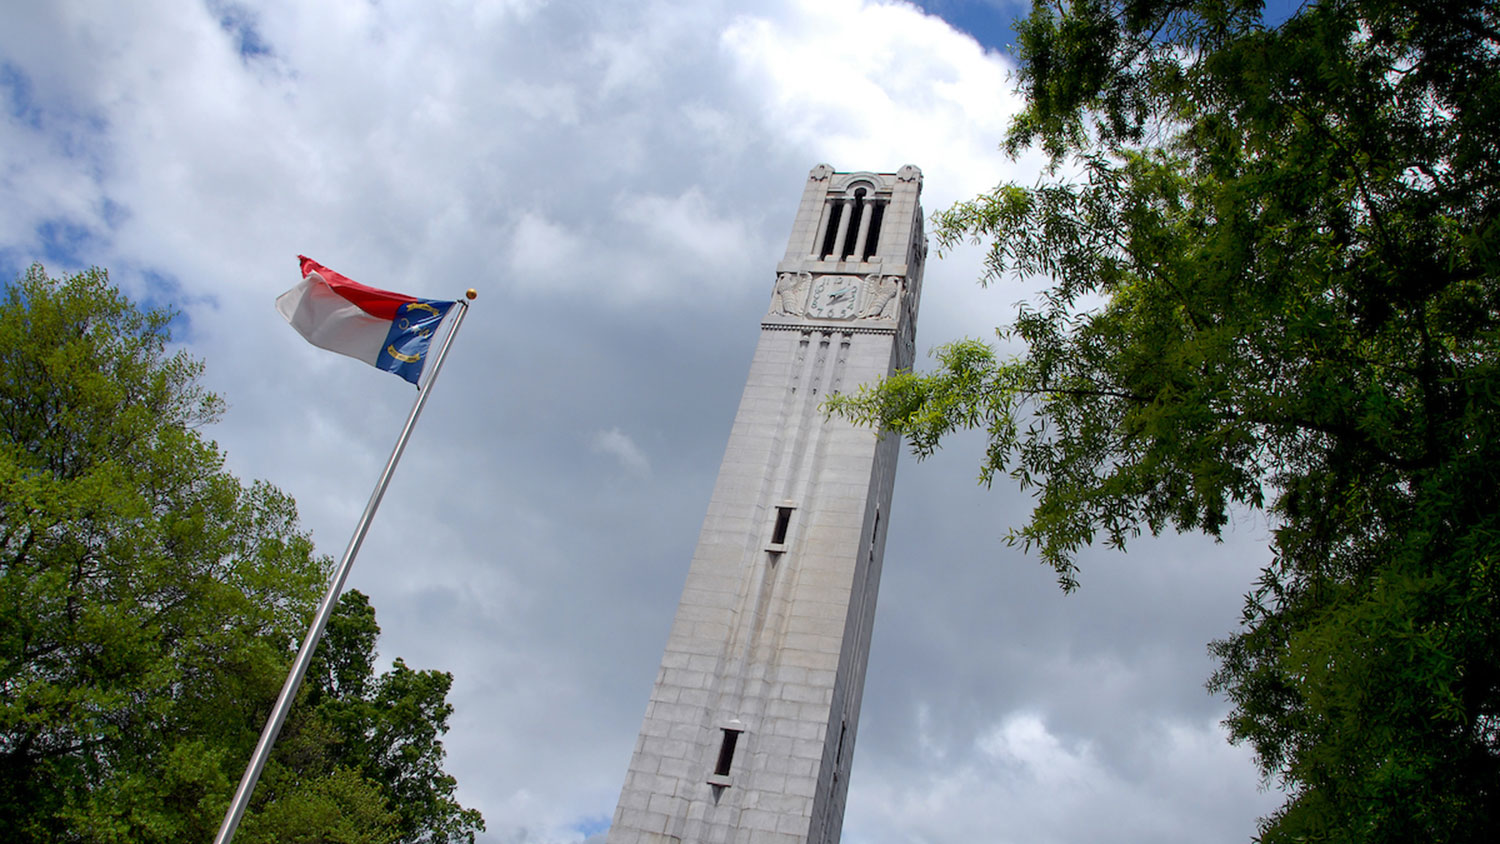 NC State Belltower on a cloudy day with state flag